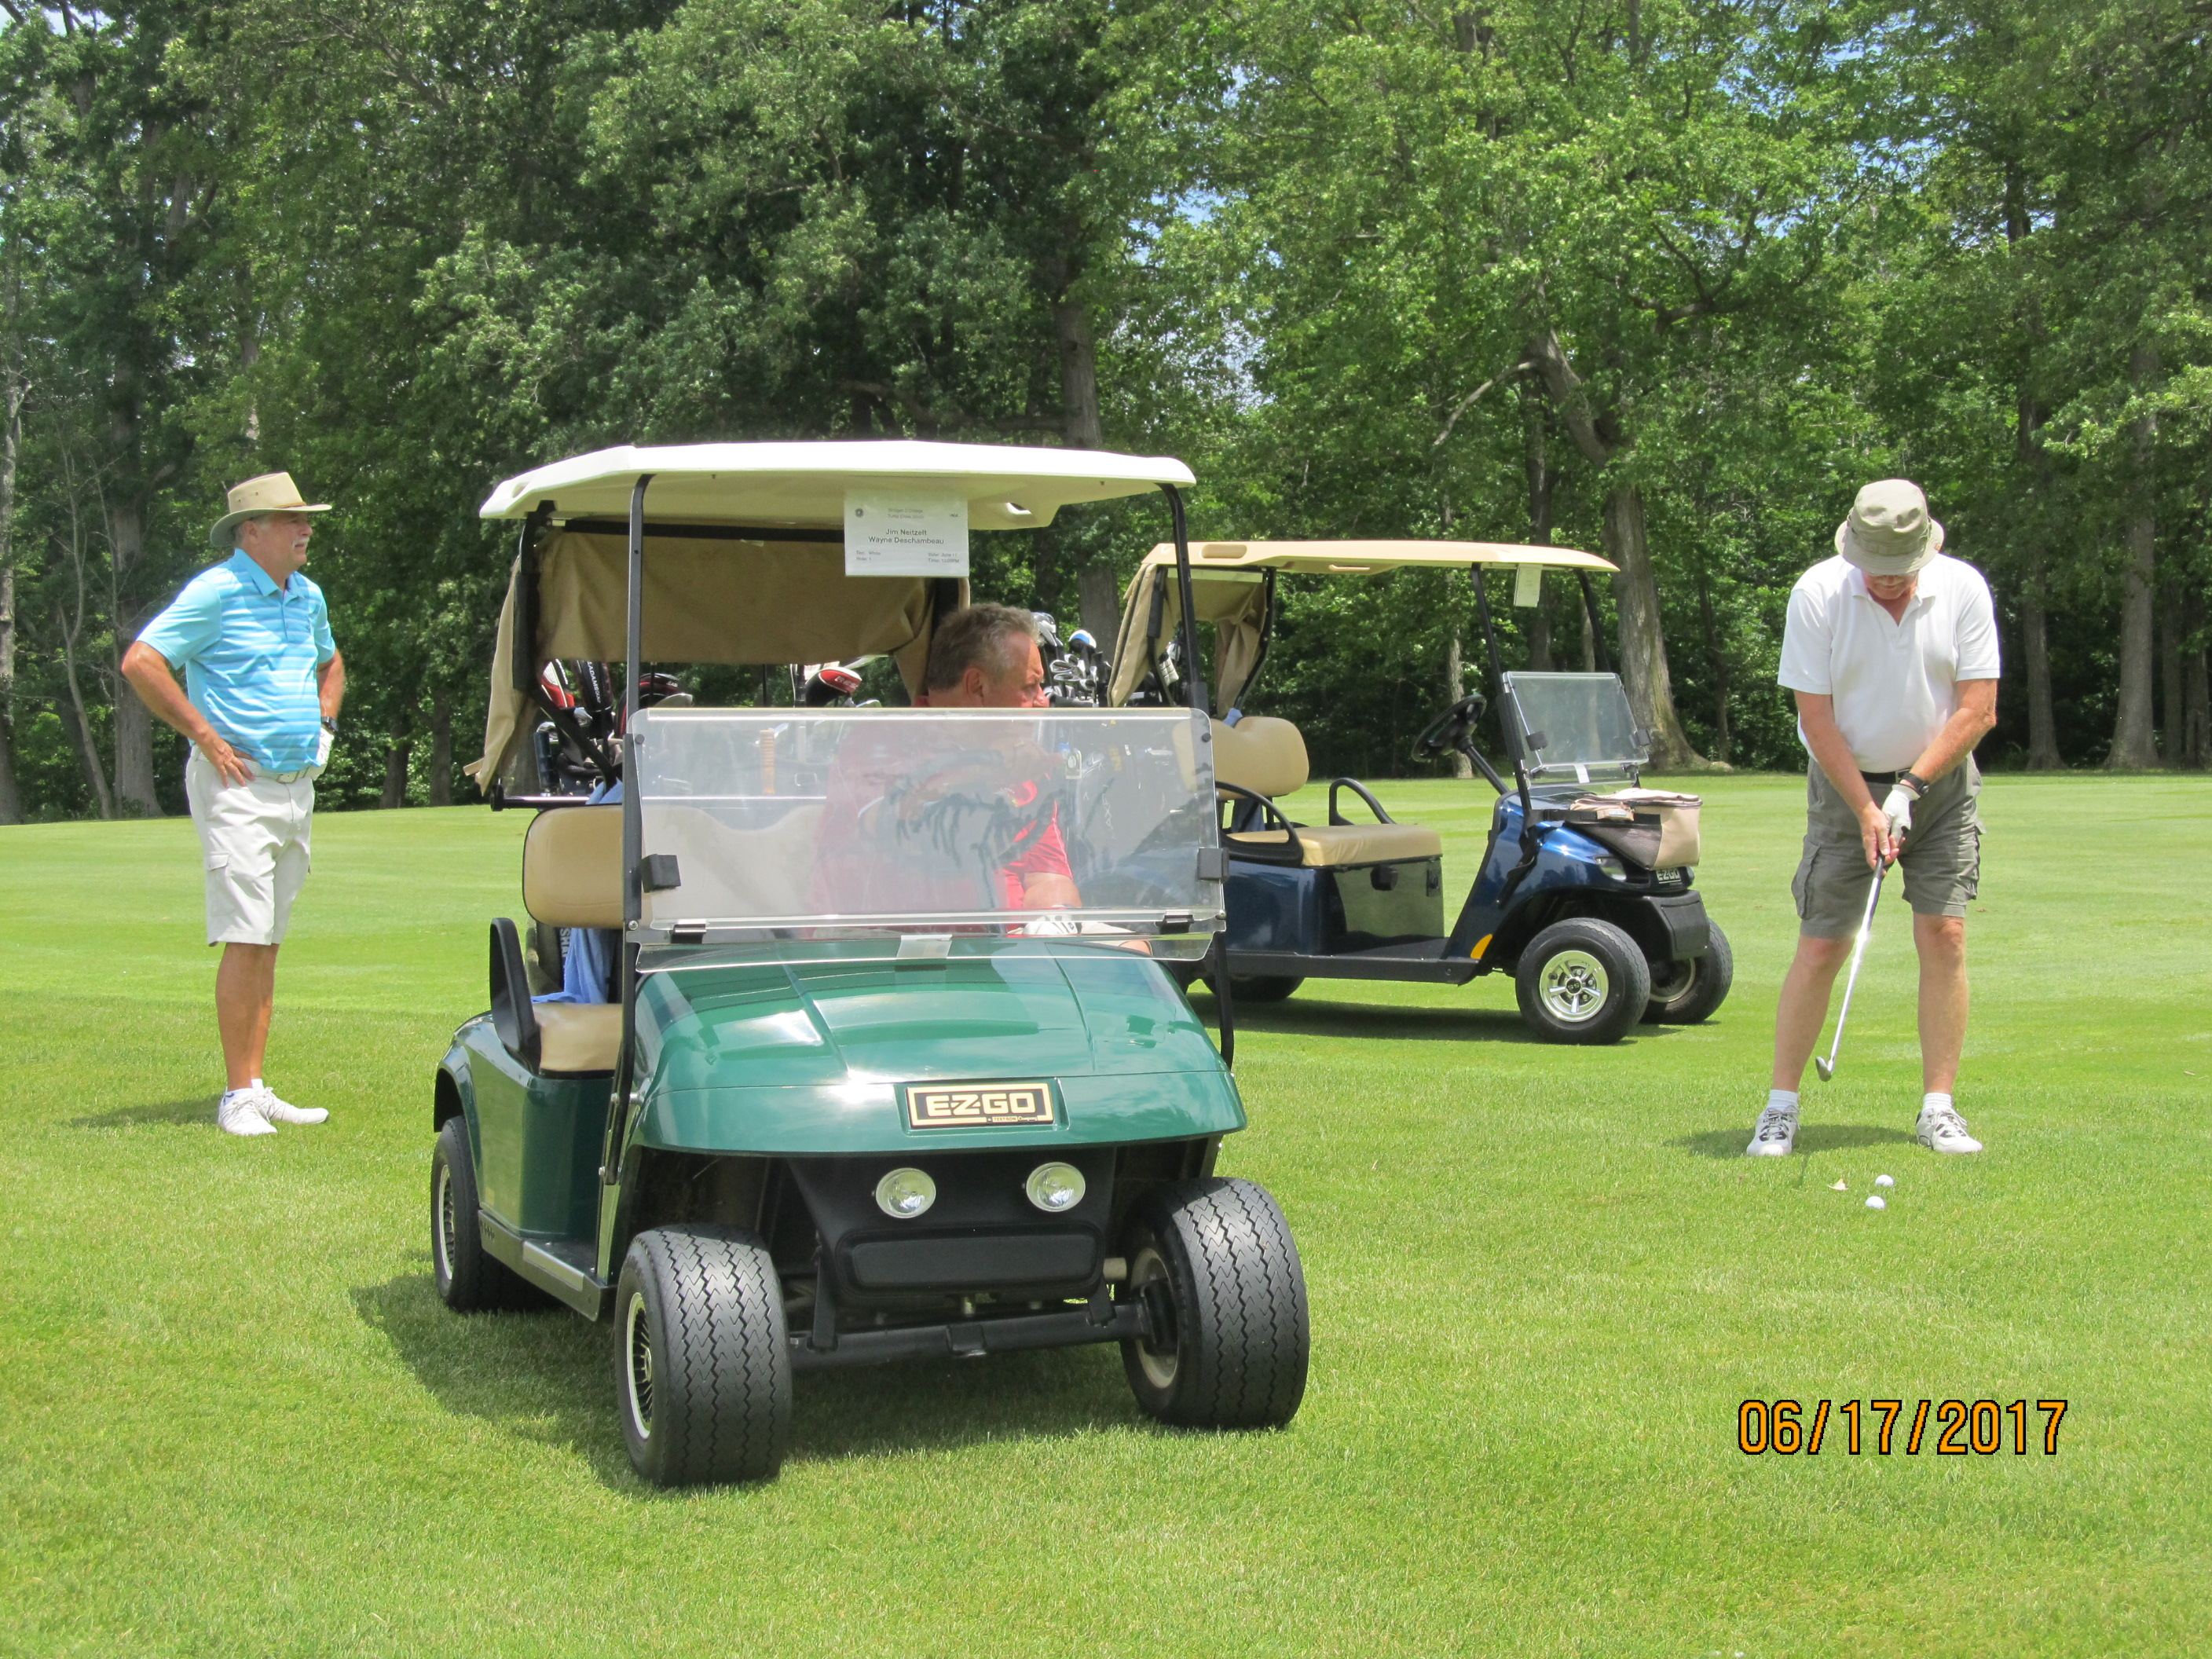 B2C GOLF OUTING